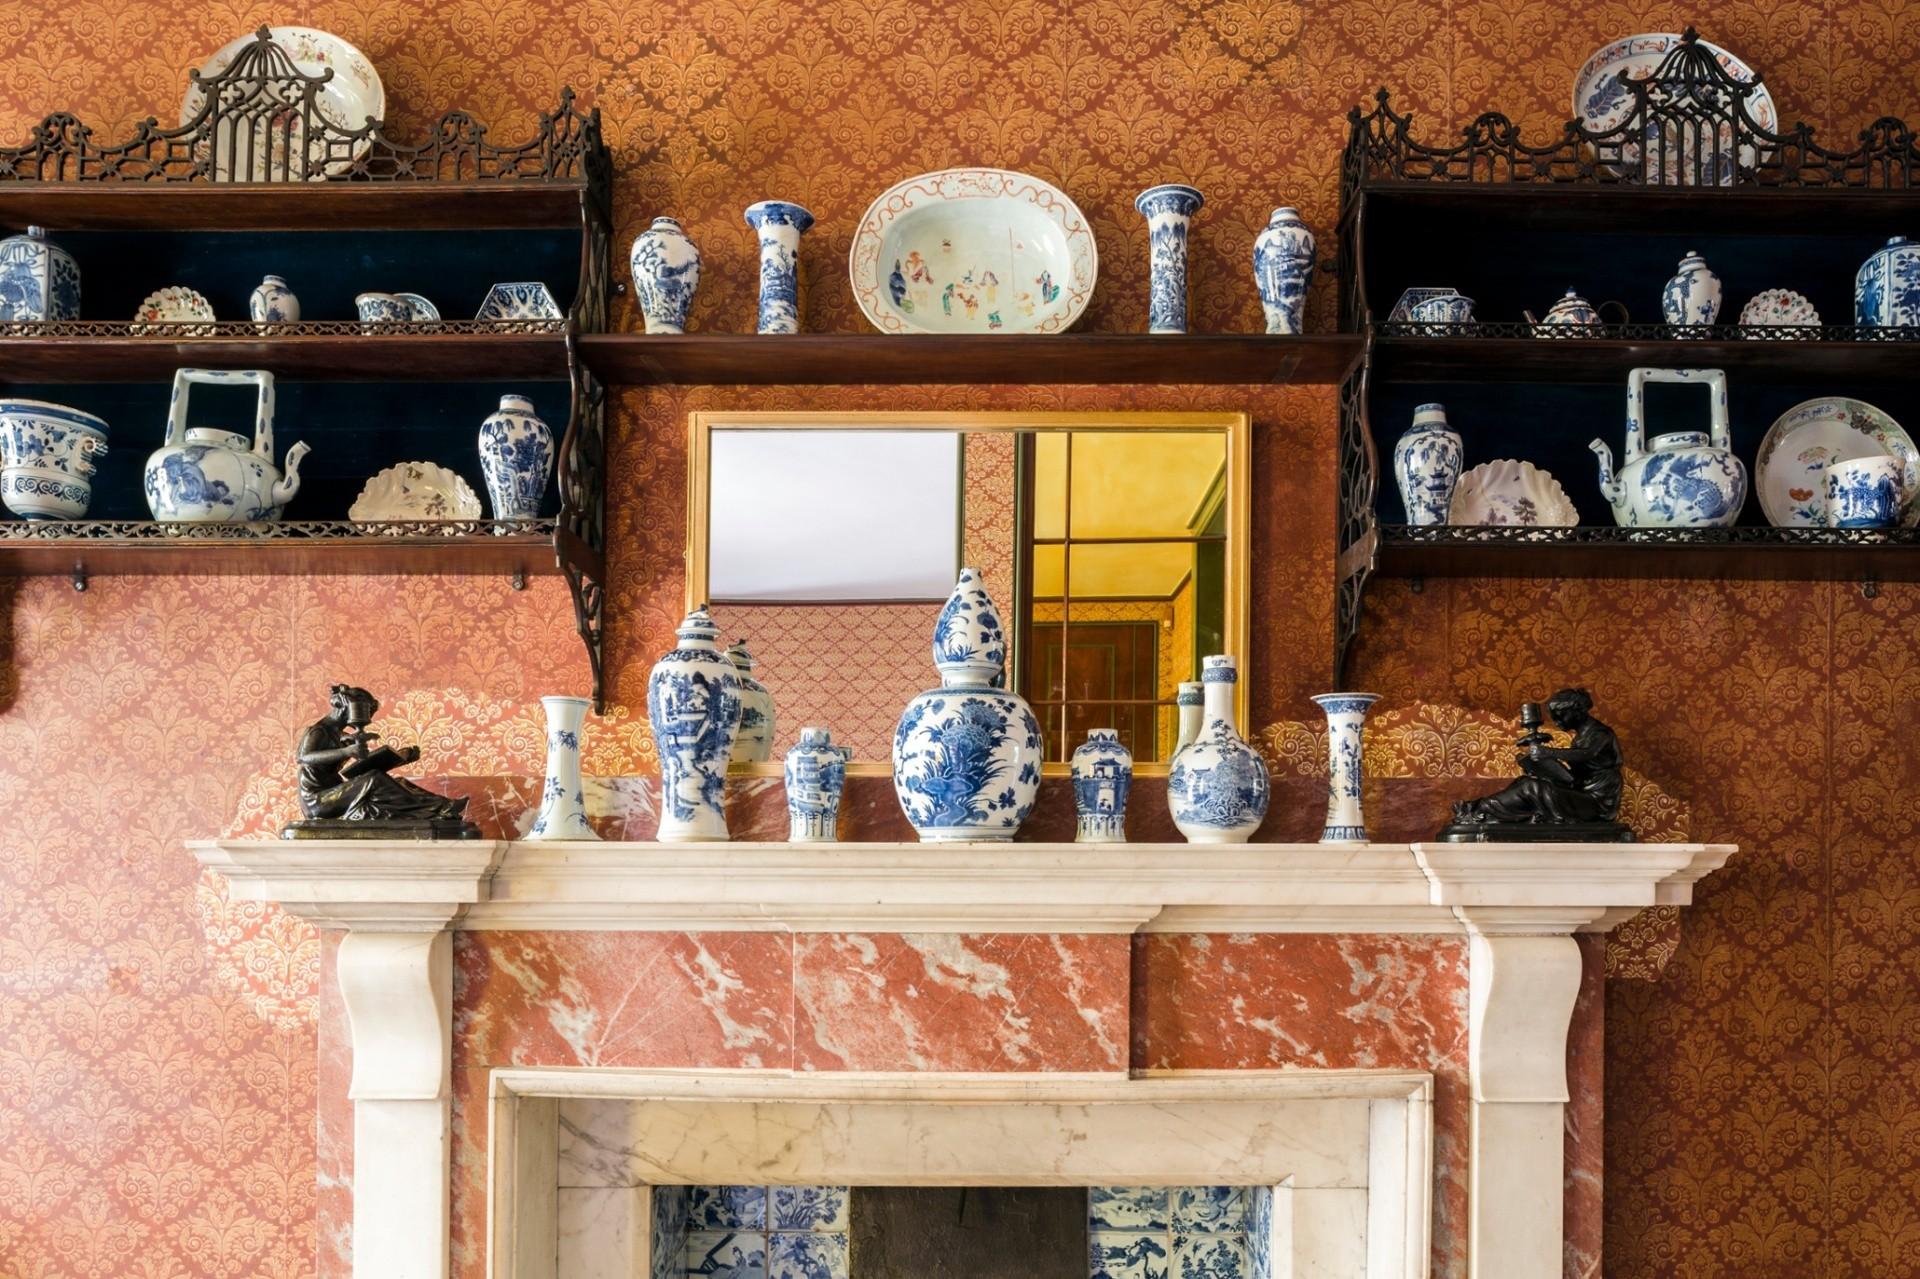 London's Soane's Museum Unveil A Series Of New Spaces, Courtesy of Soane Museum